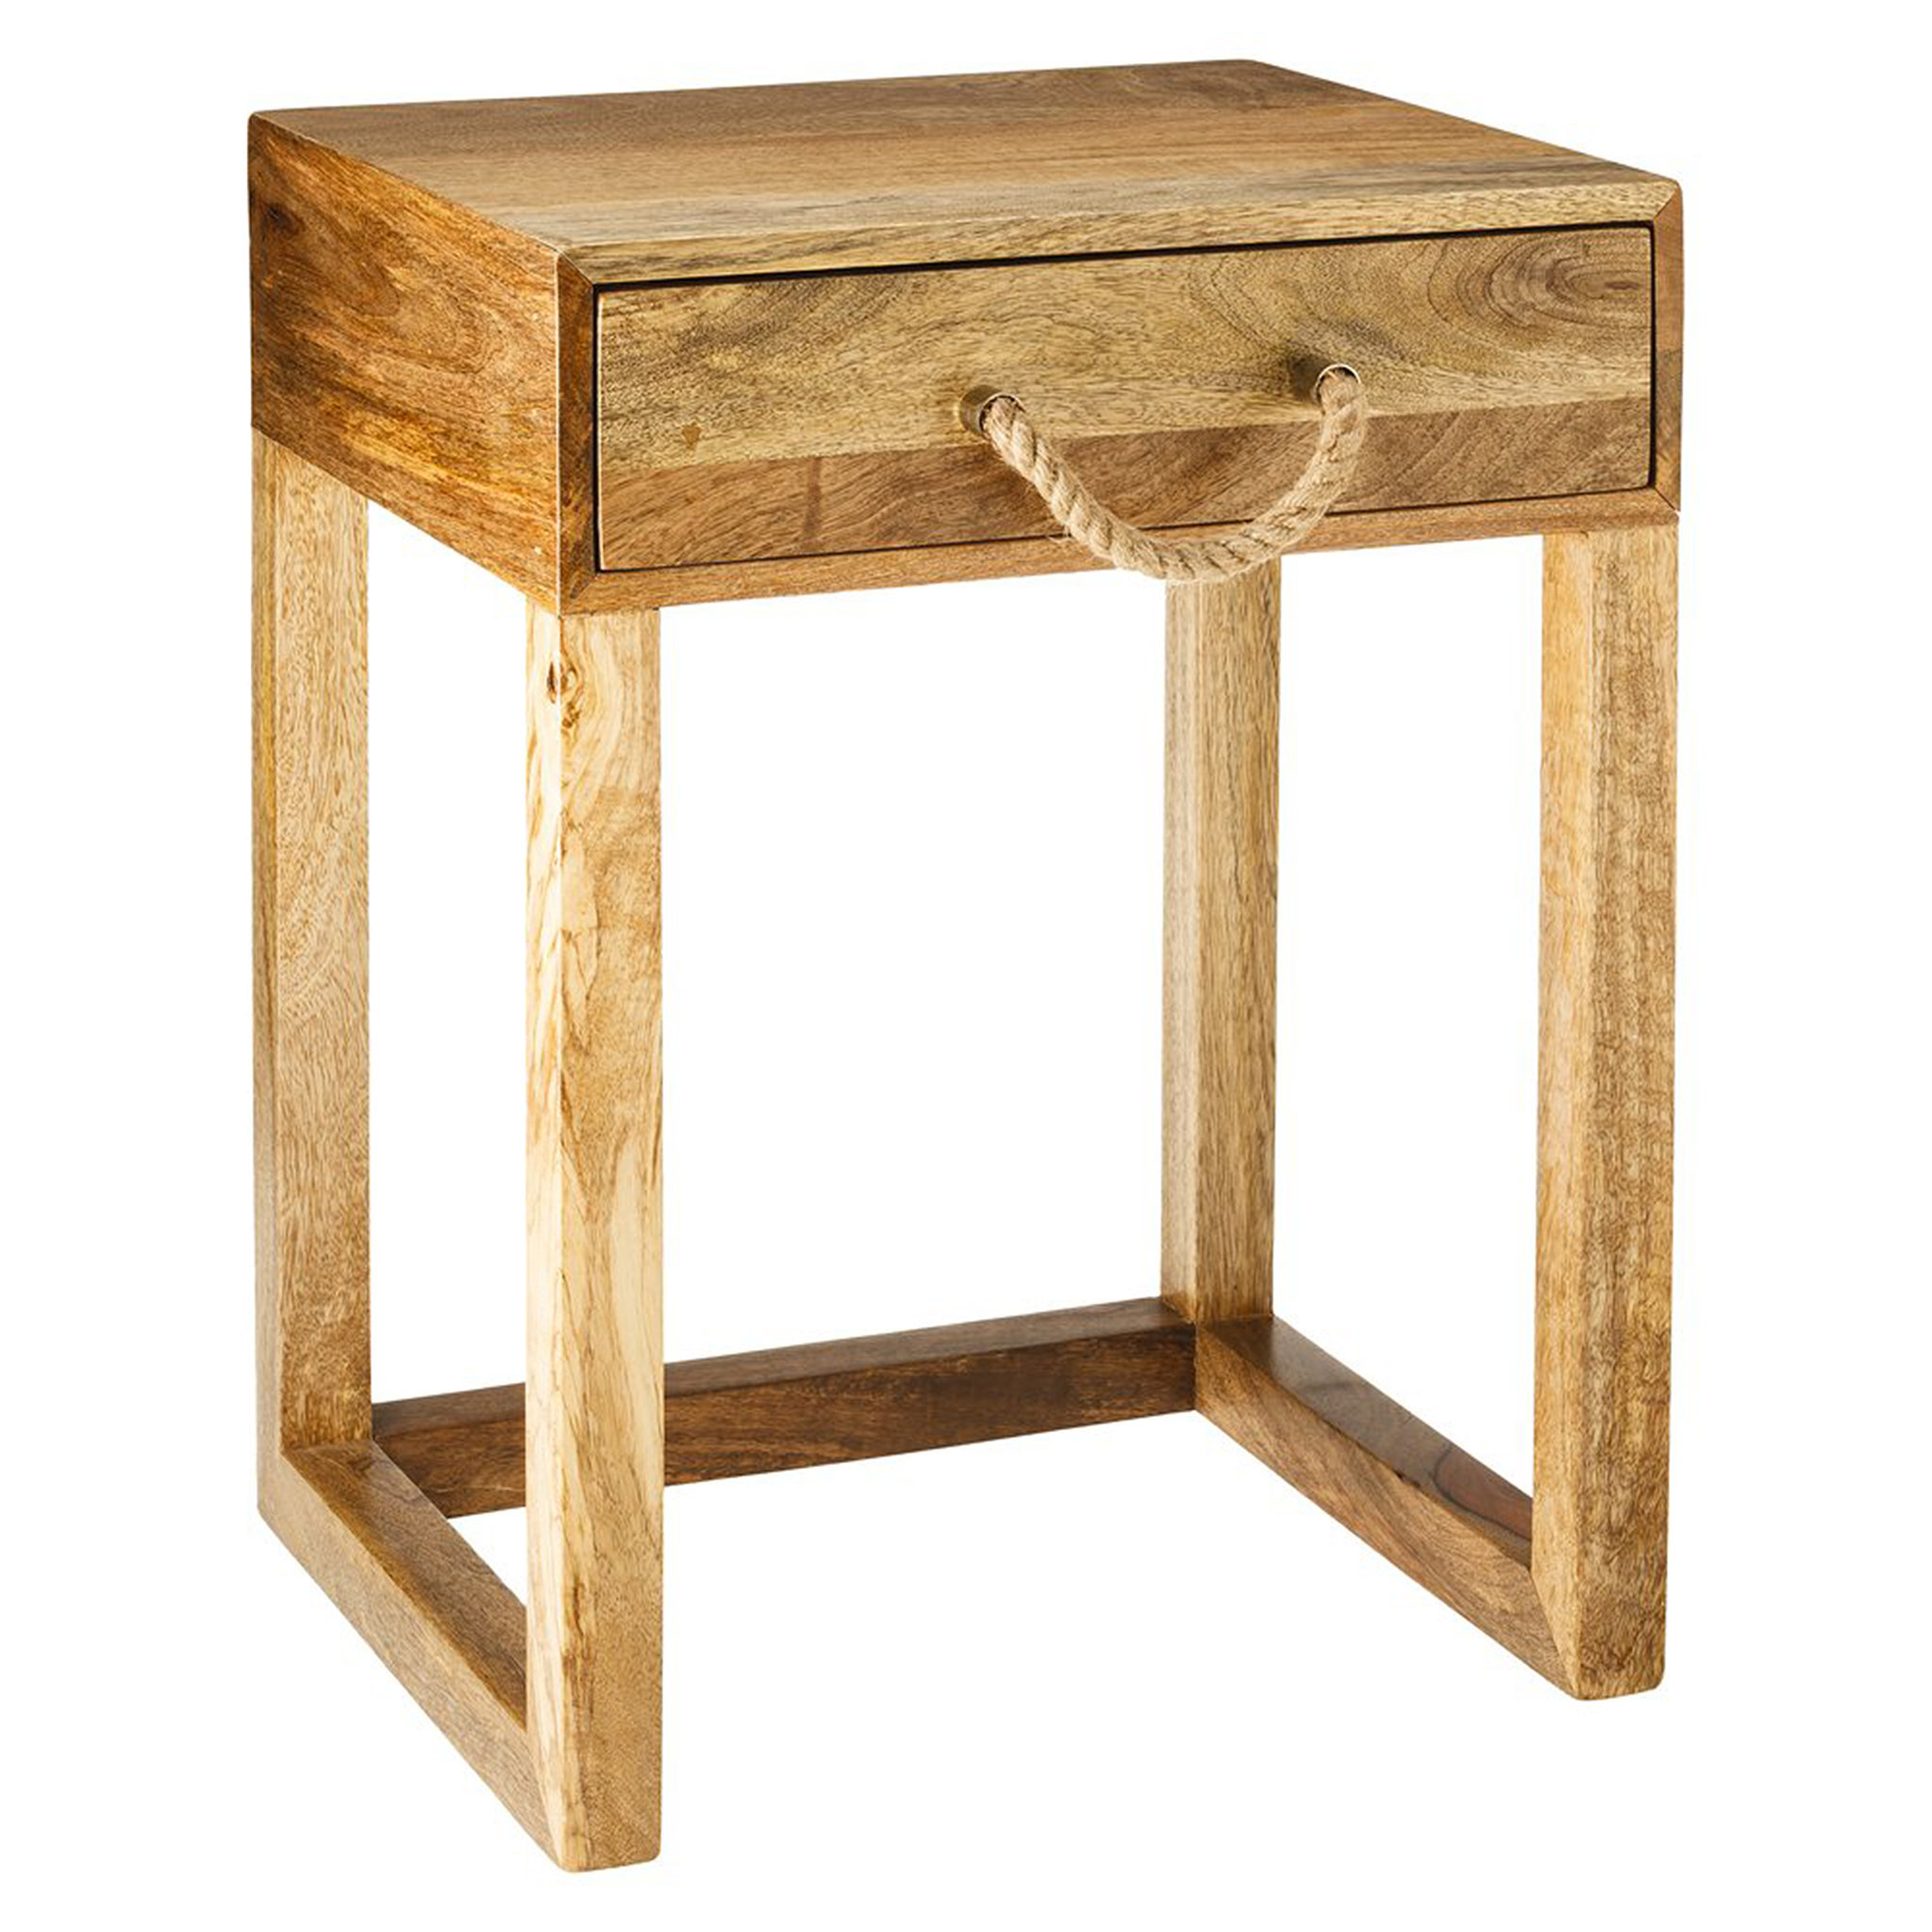 The natural wood tones and rope handle on this accent table ($90) will add a casual beach vibe to a bedroom or living room.